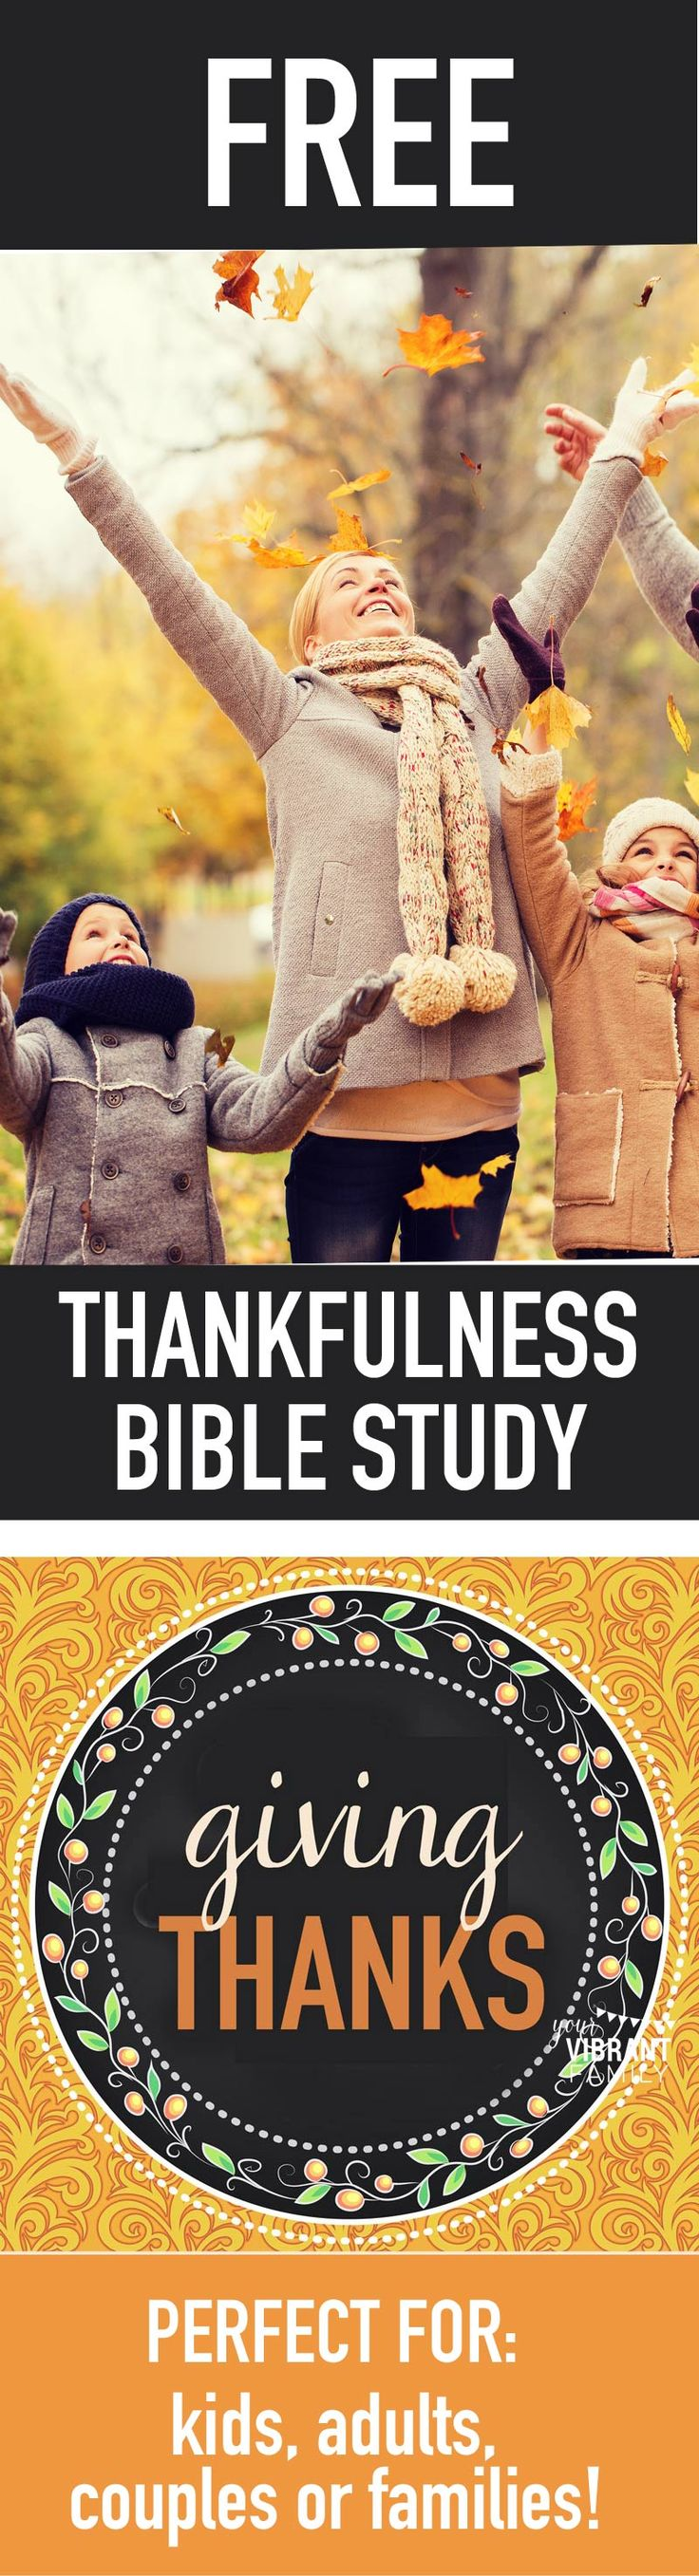 Thankful in Everything - WakeUP Daily Bible Study - 02-26 ...